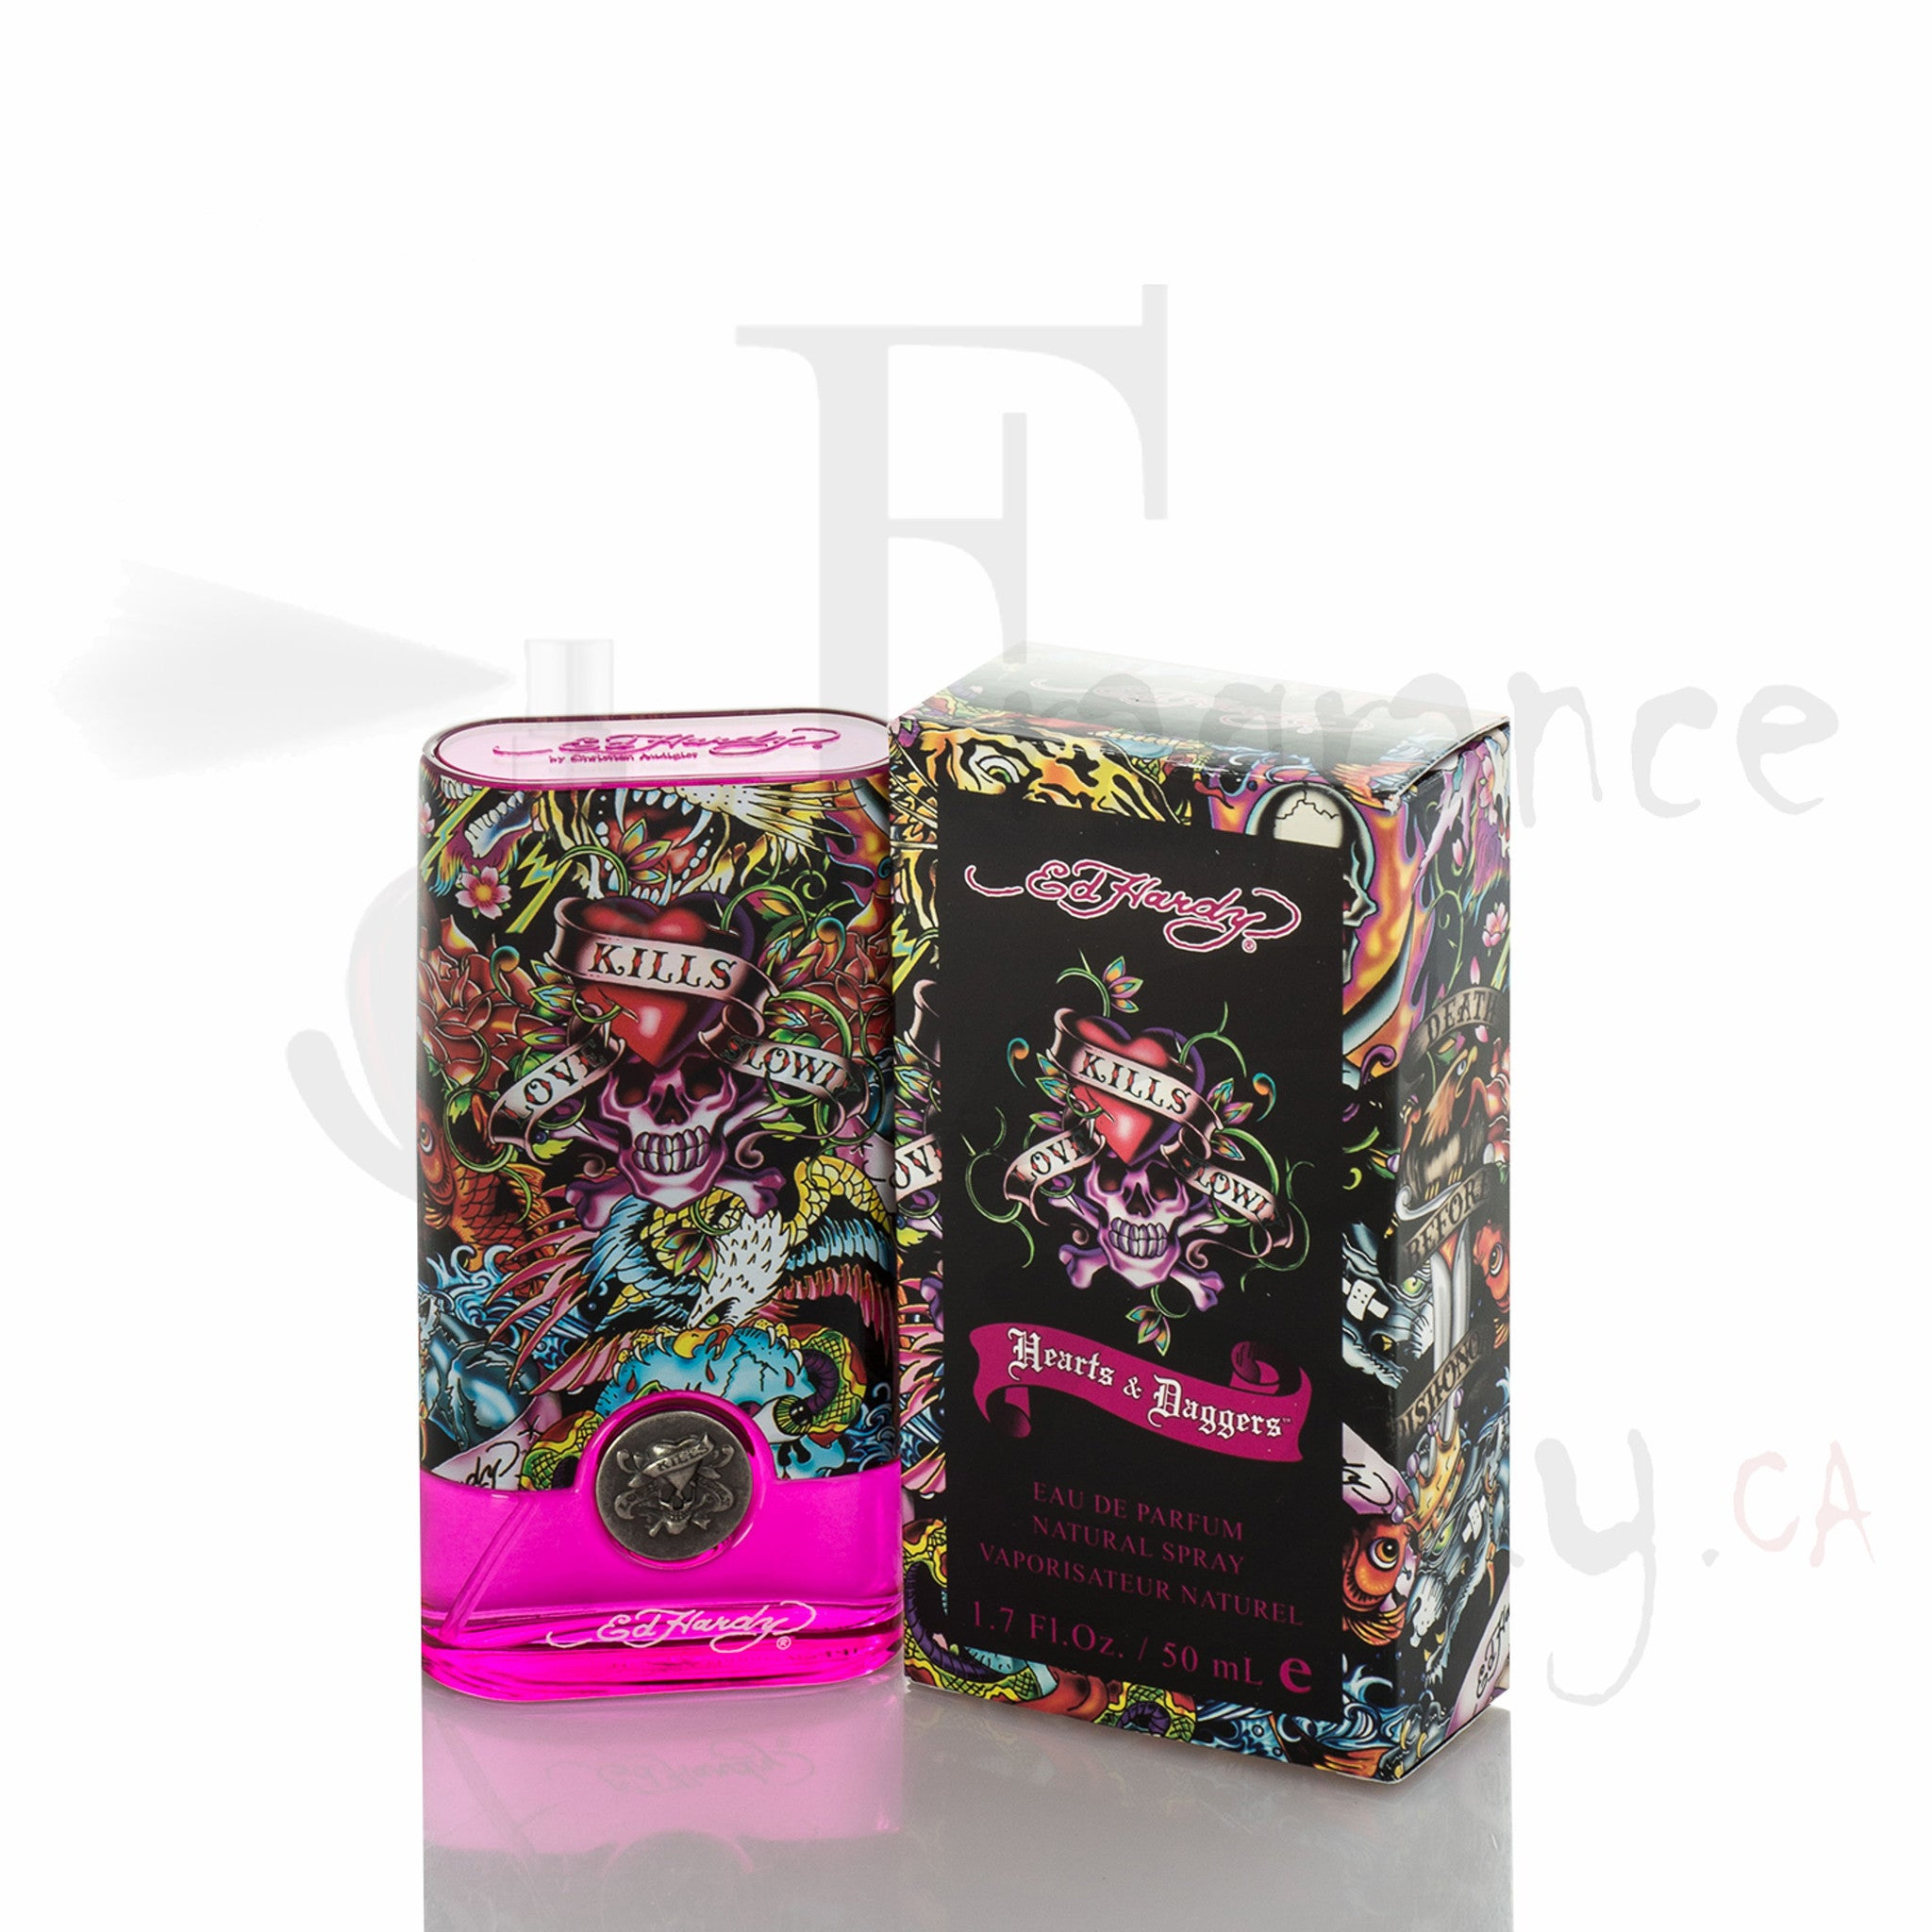 Ed Hardy Hearts & Daggers For Woman